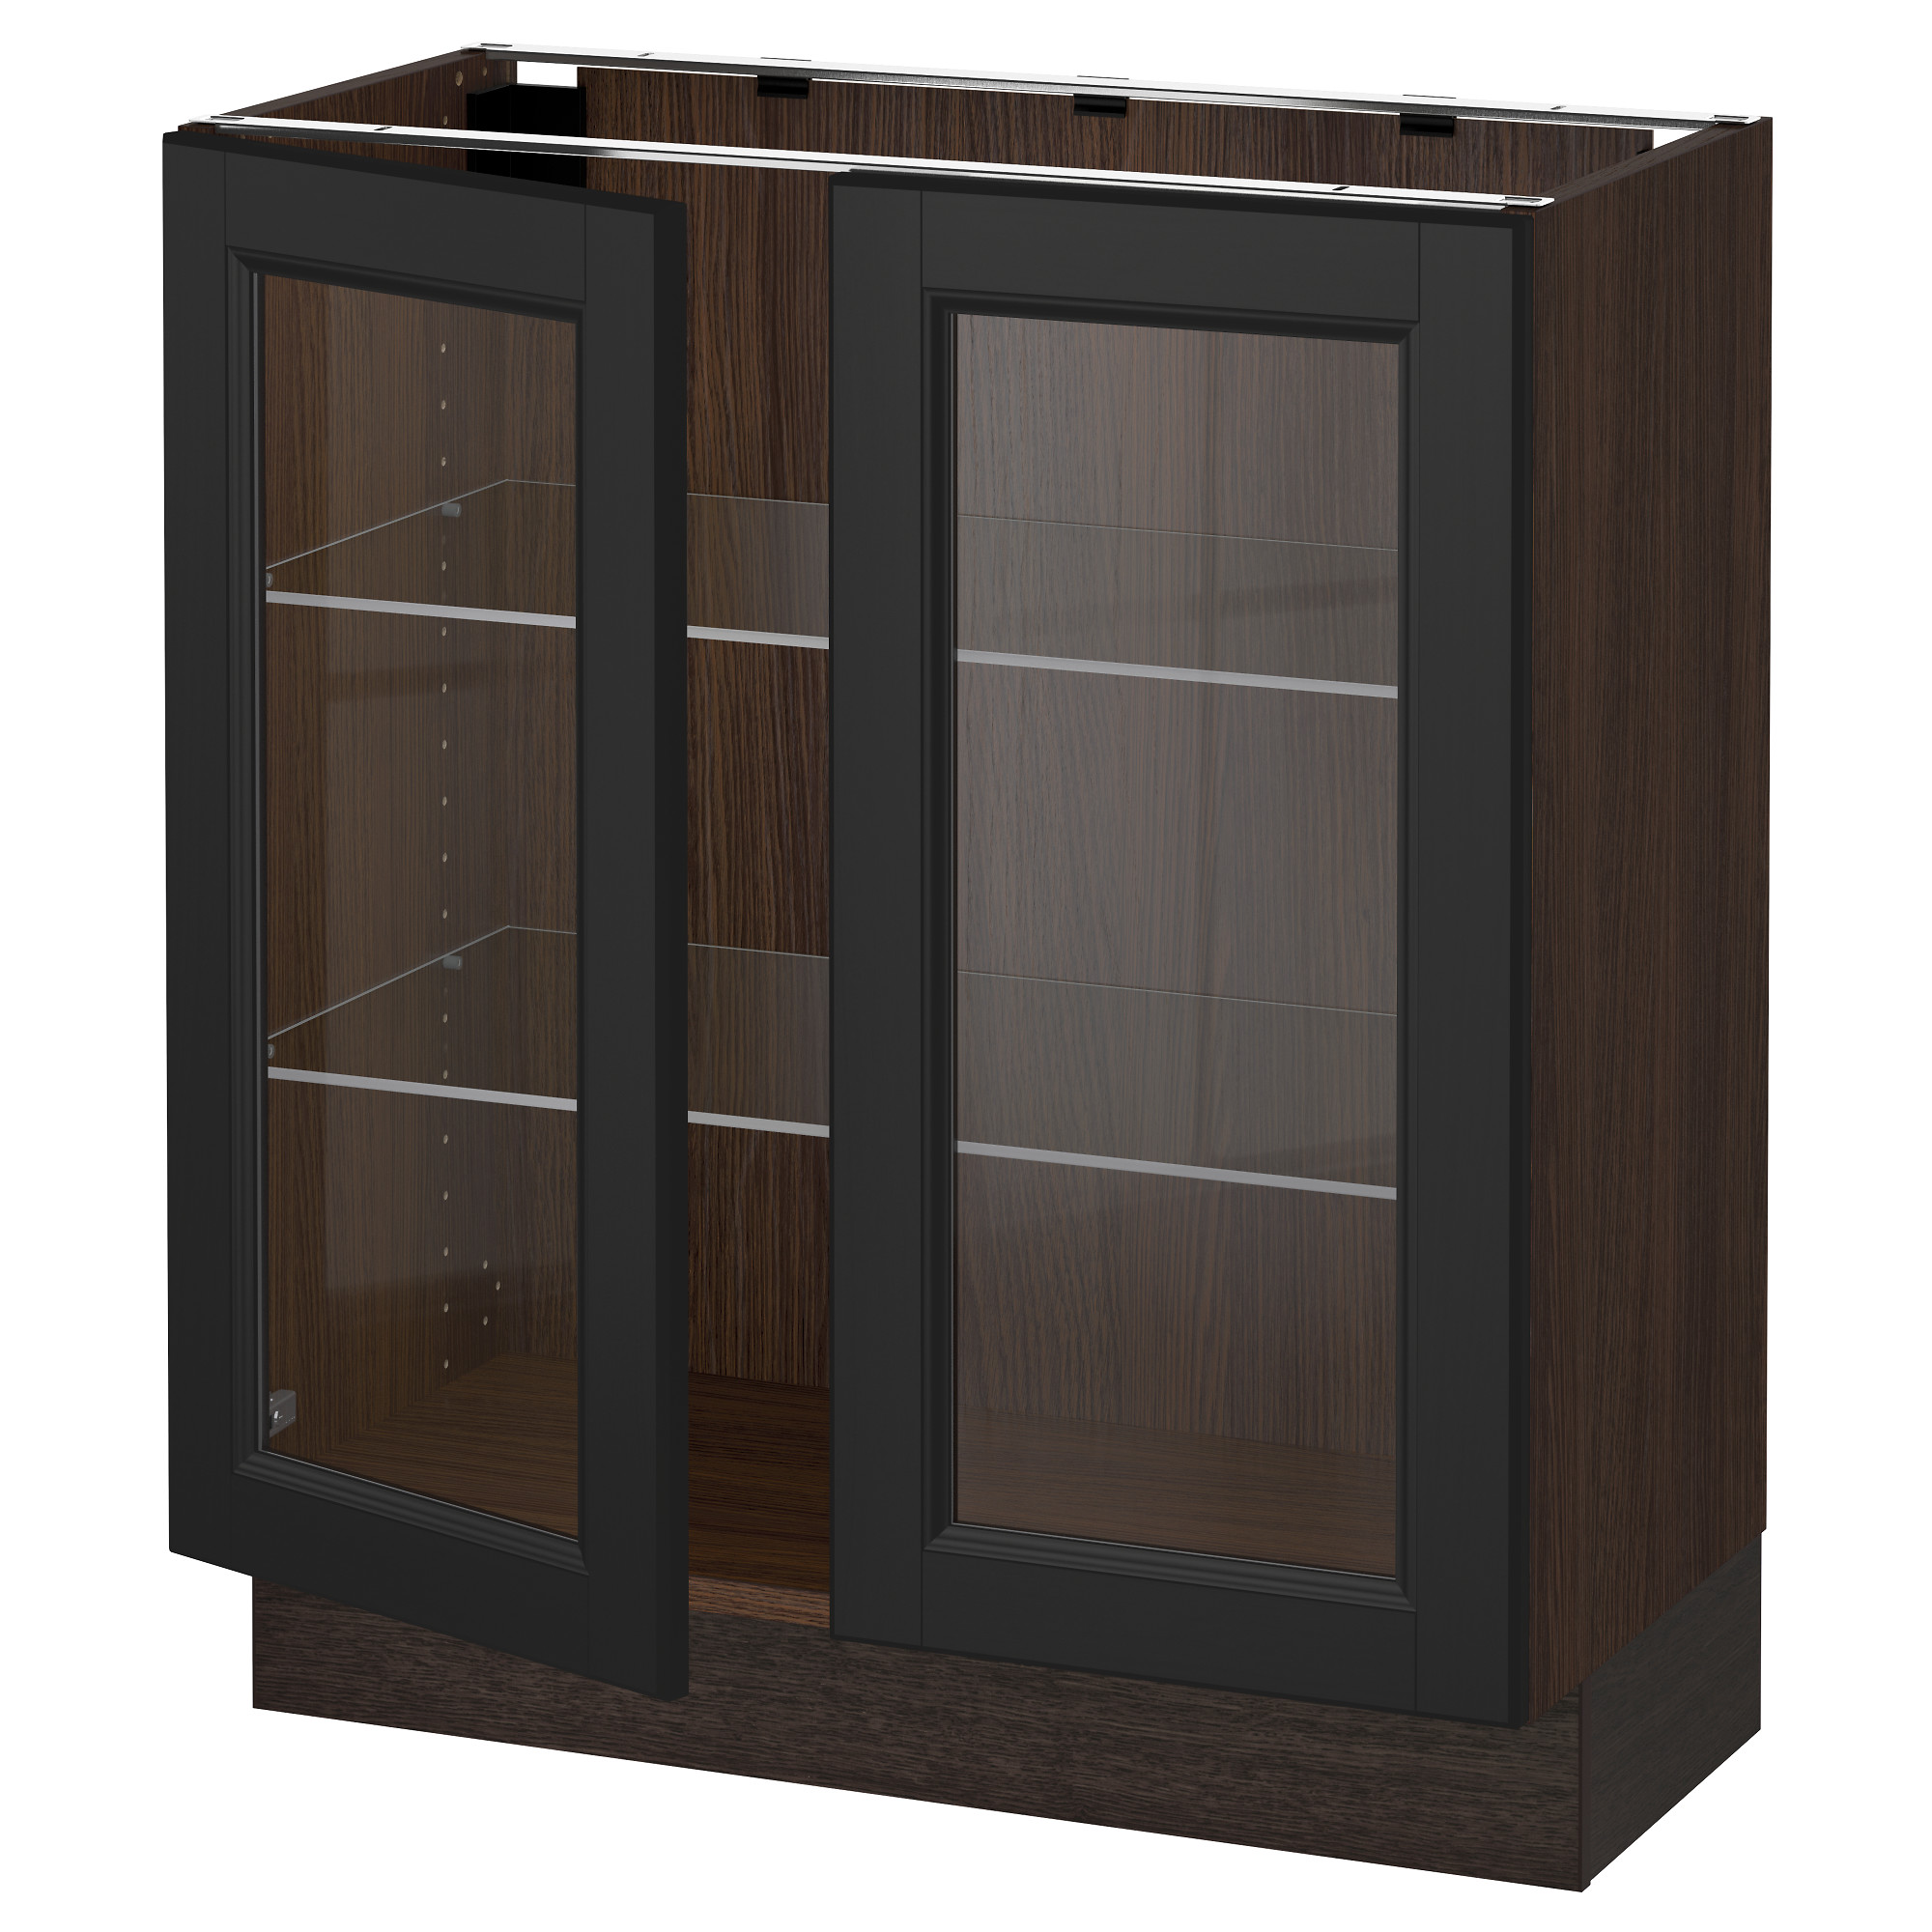 sektion base cabinet with 2 glass doors   wood effect brown ekestad brown 36x15x30      ikea sektion base cabinet with 2 glass doors   wood effect brown      rh   ikea com